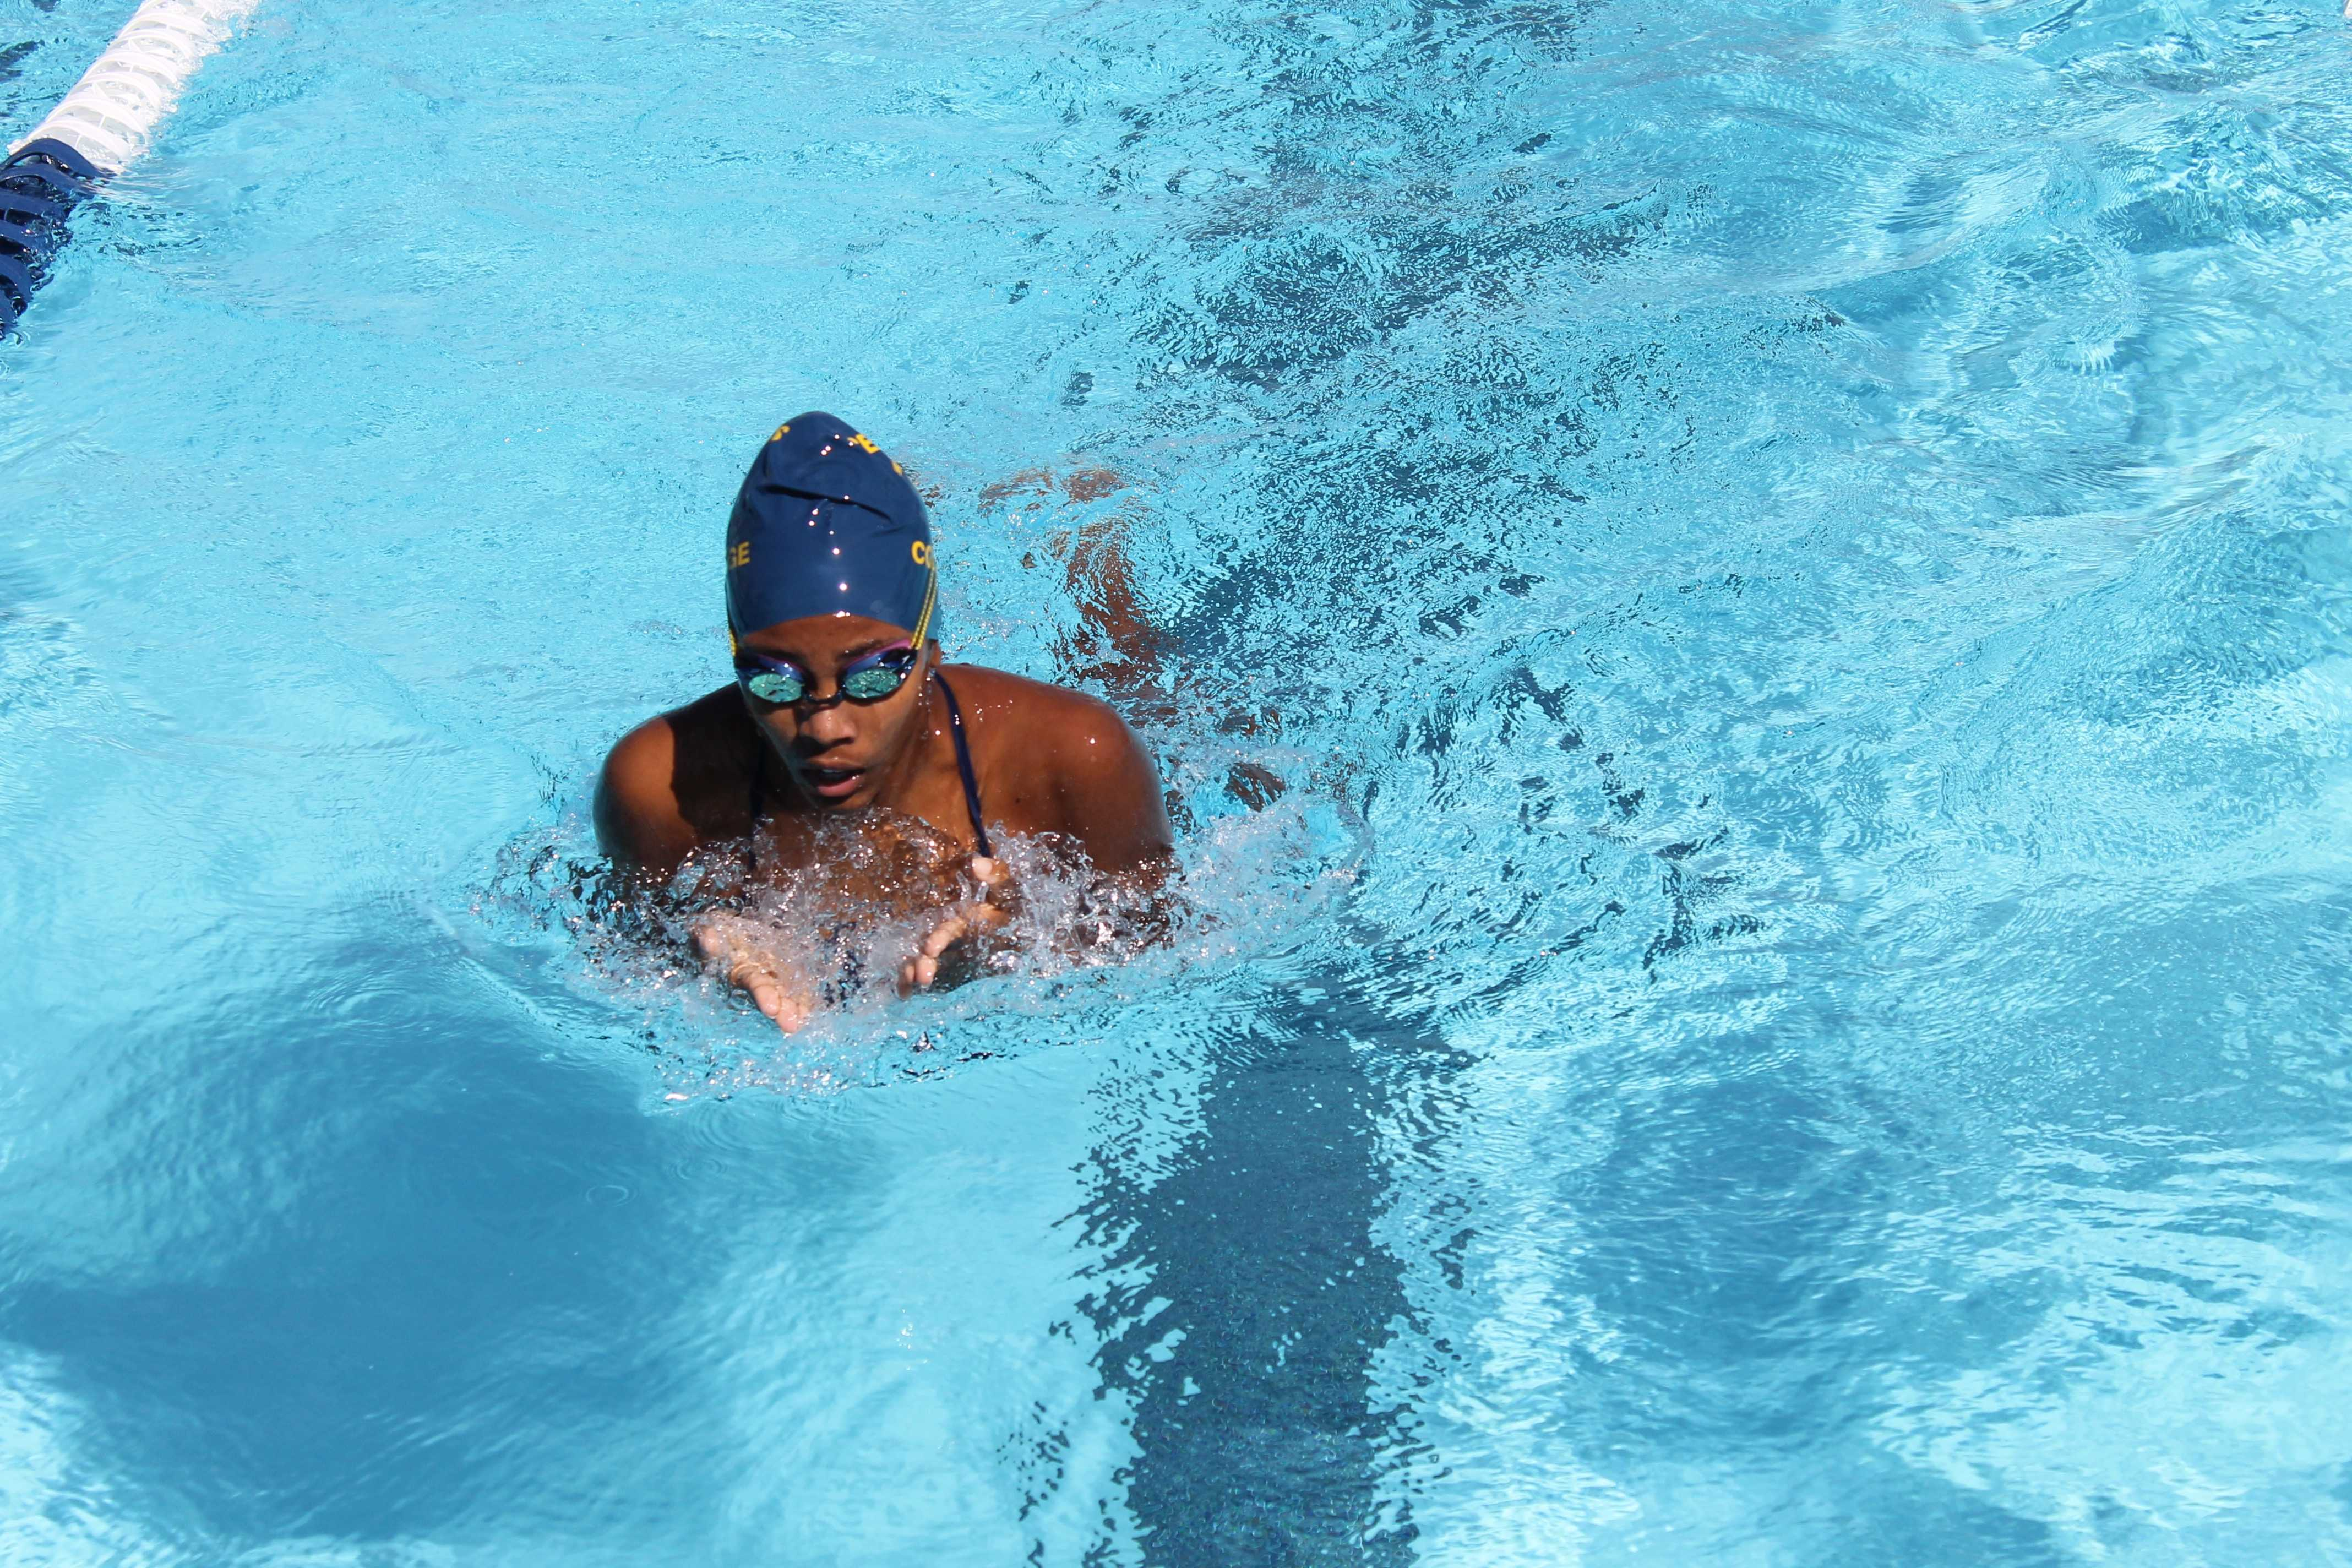 Chaffey takes the edge over women's swim team